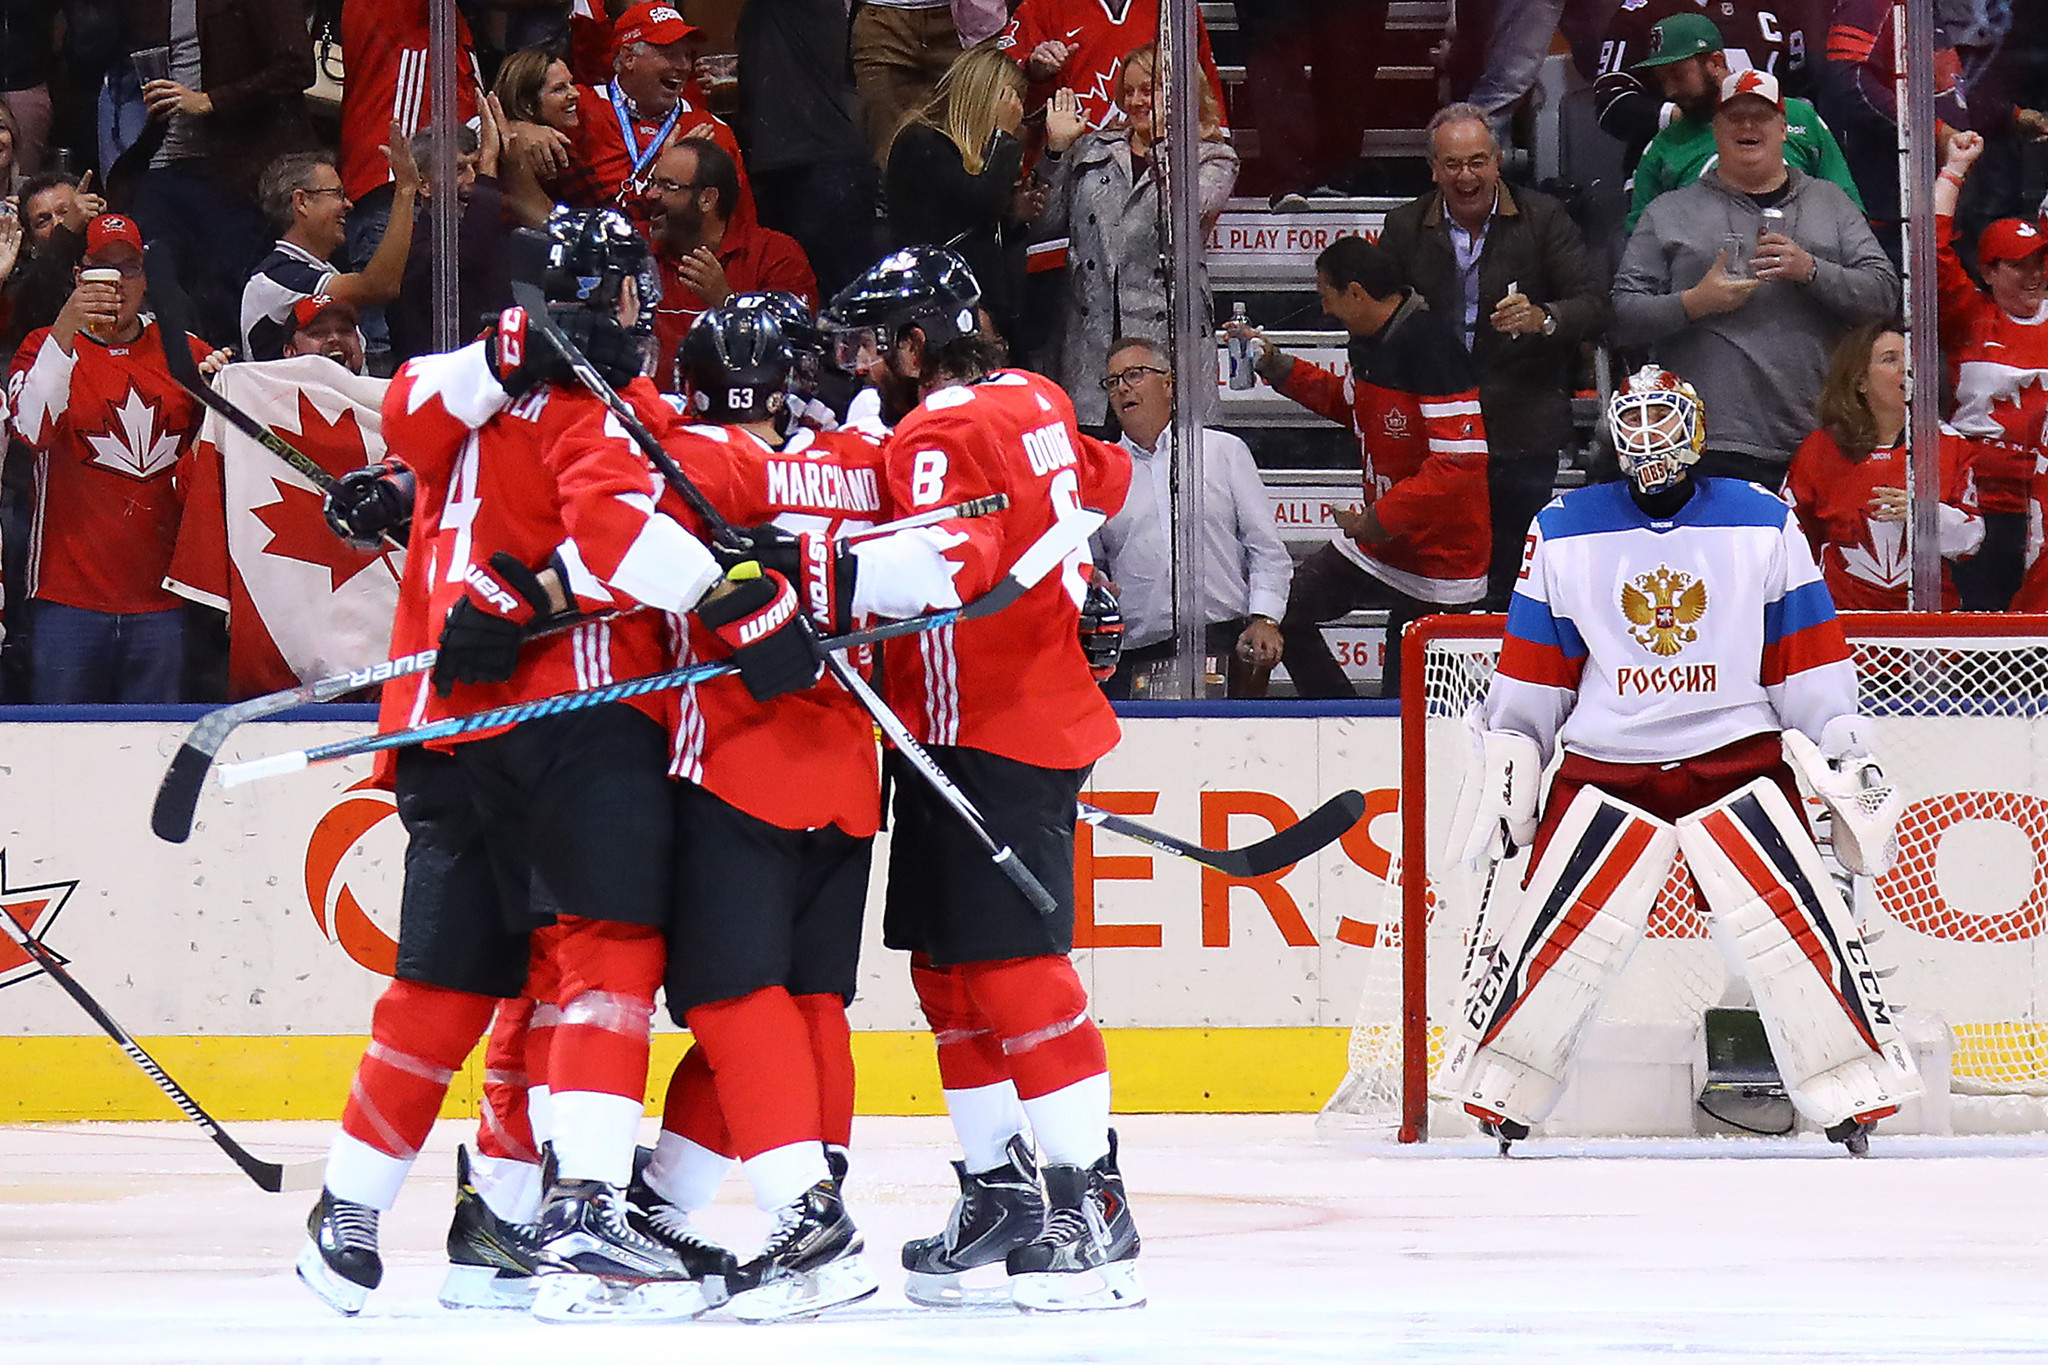 Ct-canada-russia-world-cup-game-spt-0925-20160924